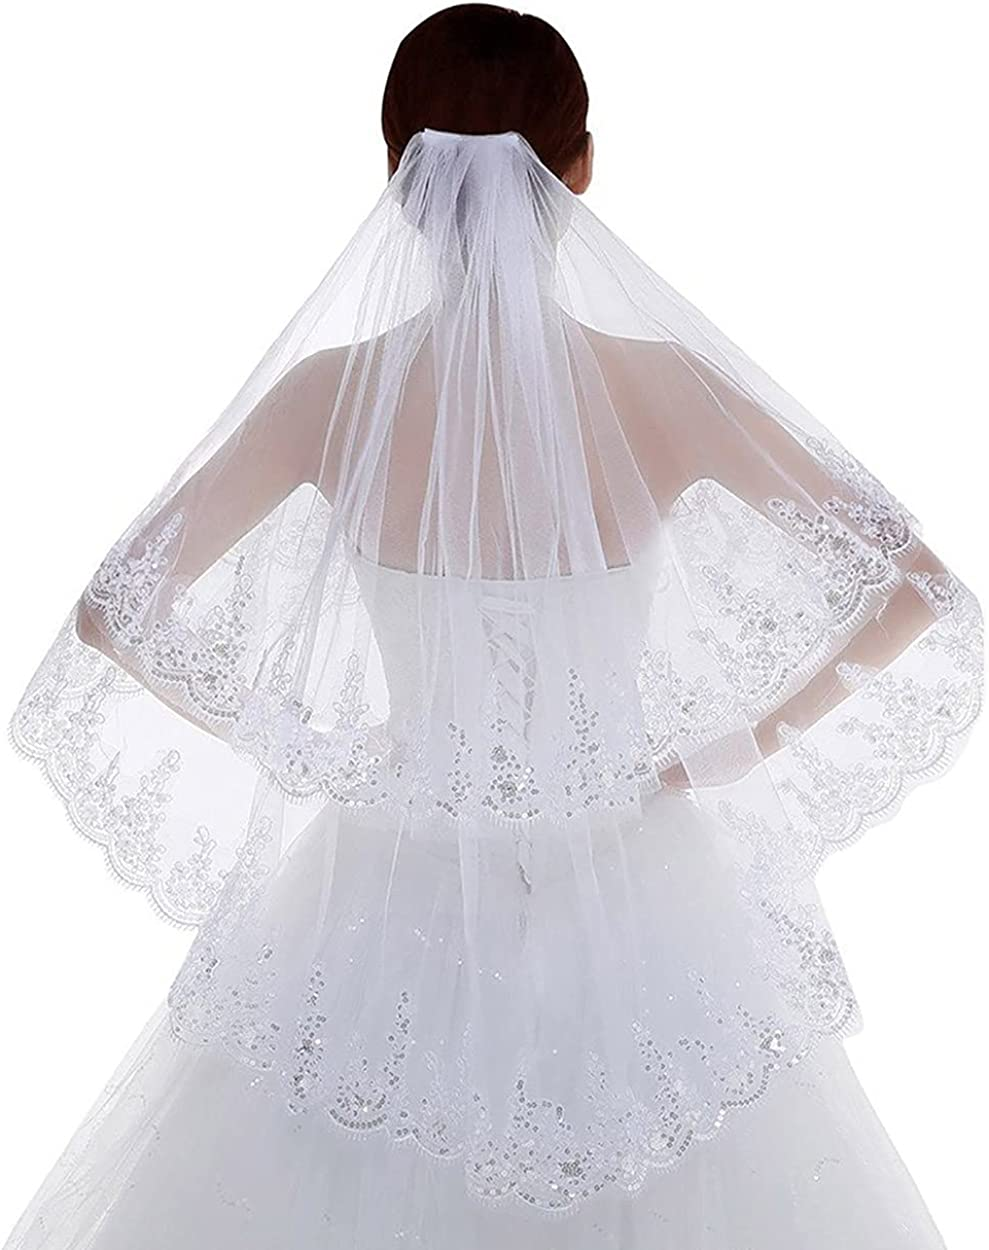 Haraty Wedding Bridal Veils 2 Tier Sequined Lace Flower Edge Tulle with Comb